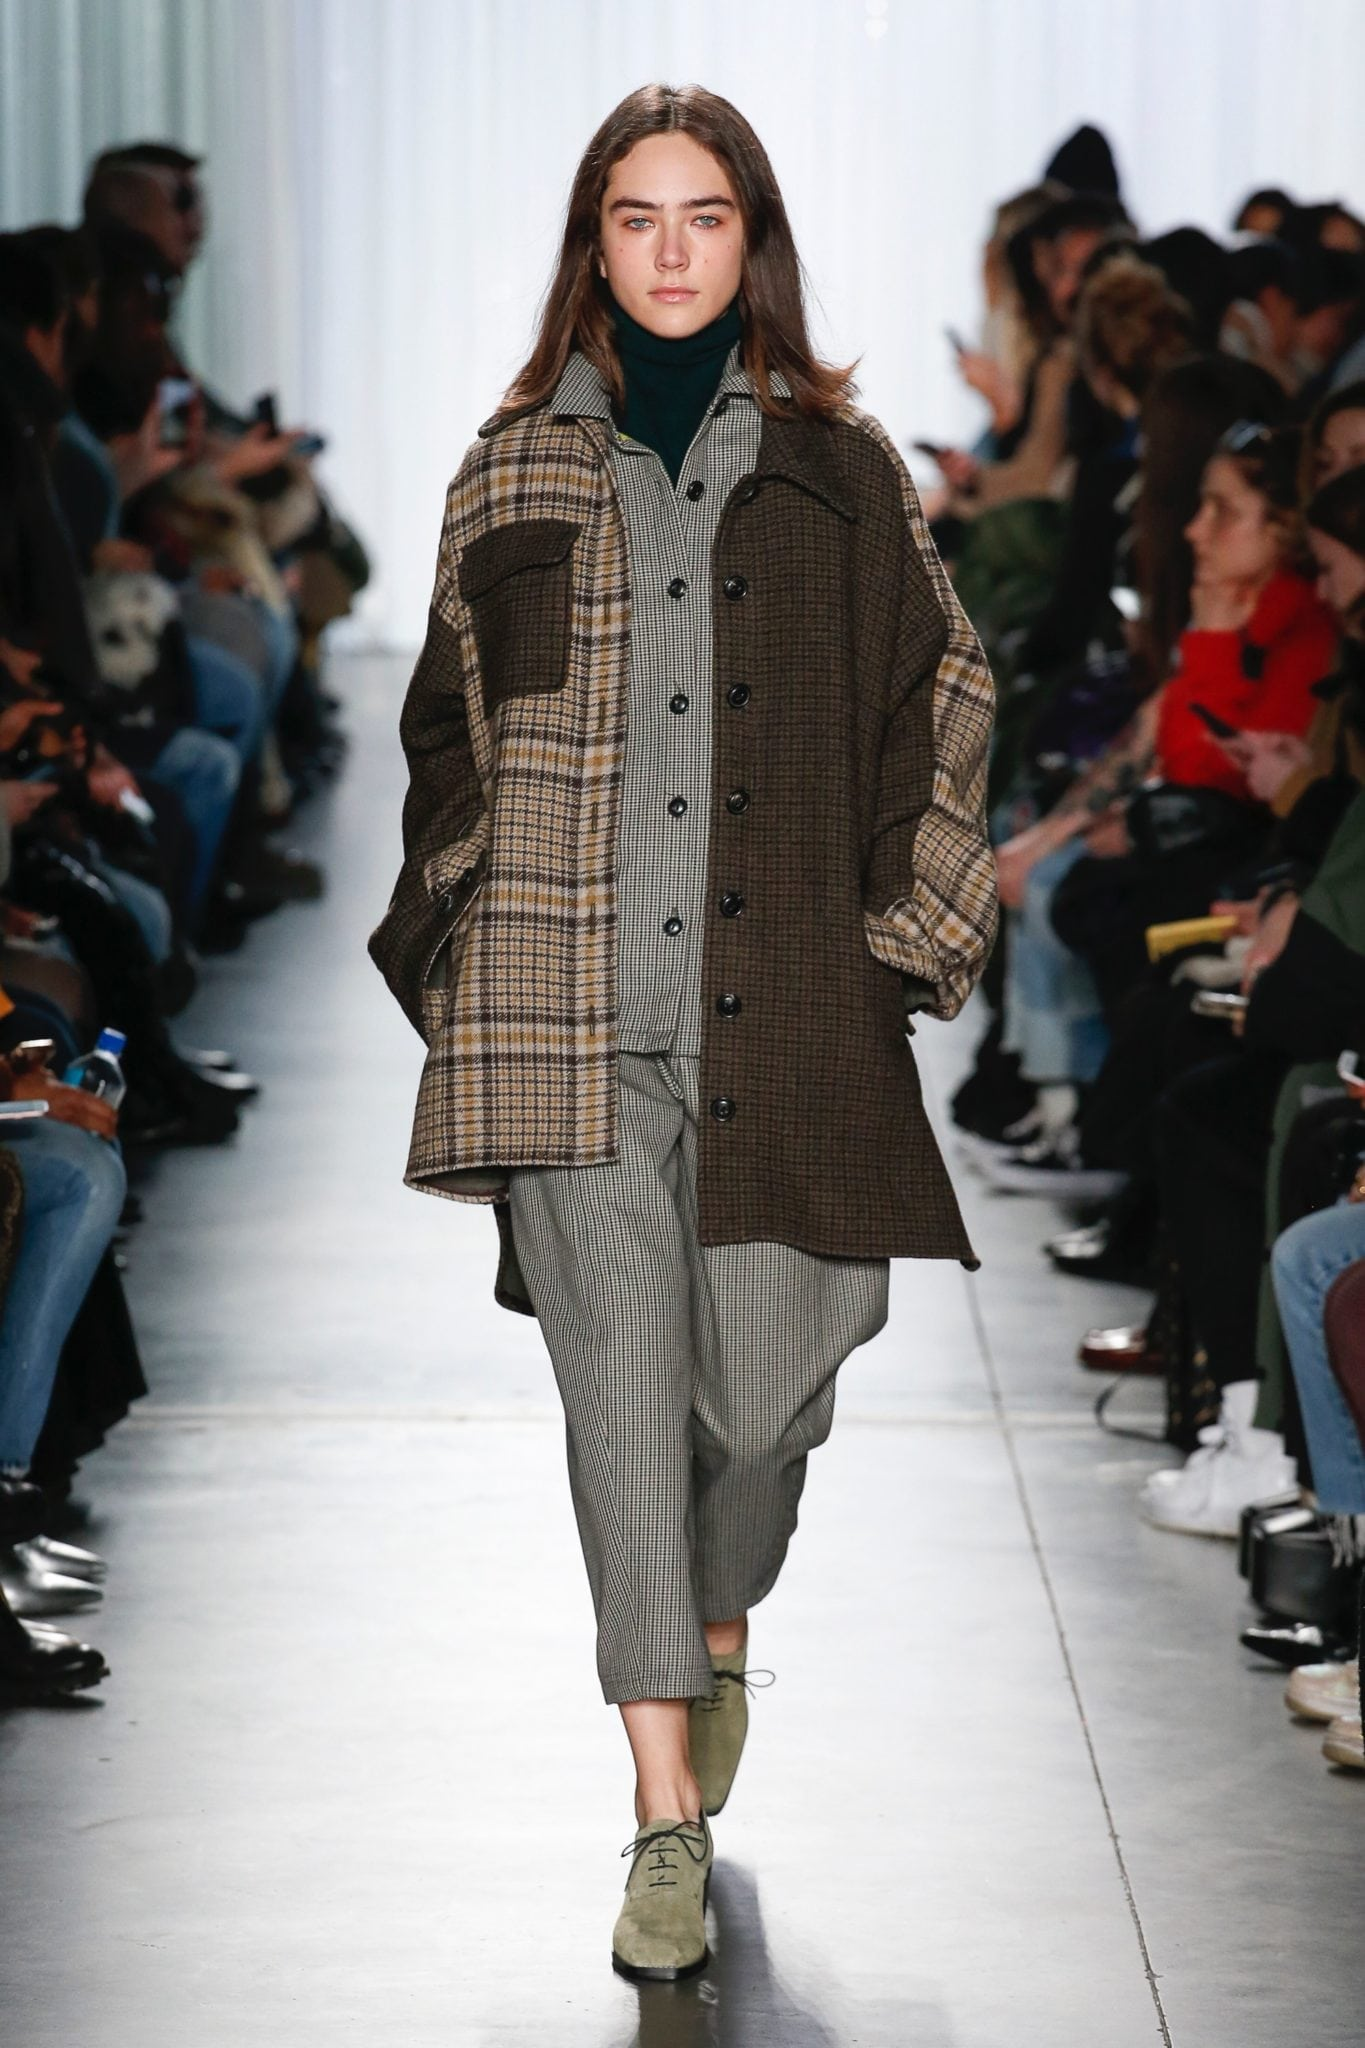 Fall Winter 2018 2019 Trends - Fashion Week Coverage